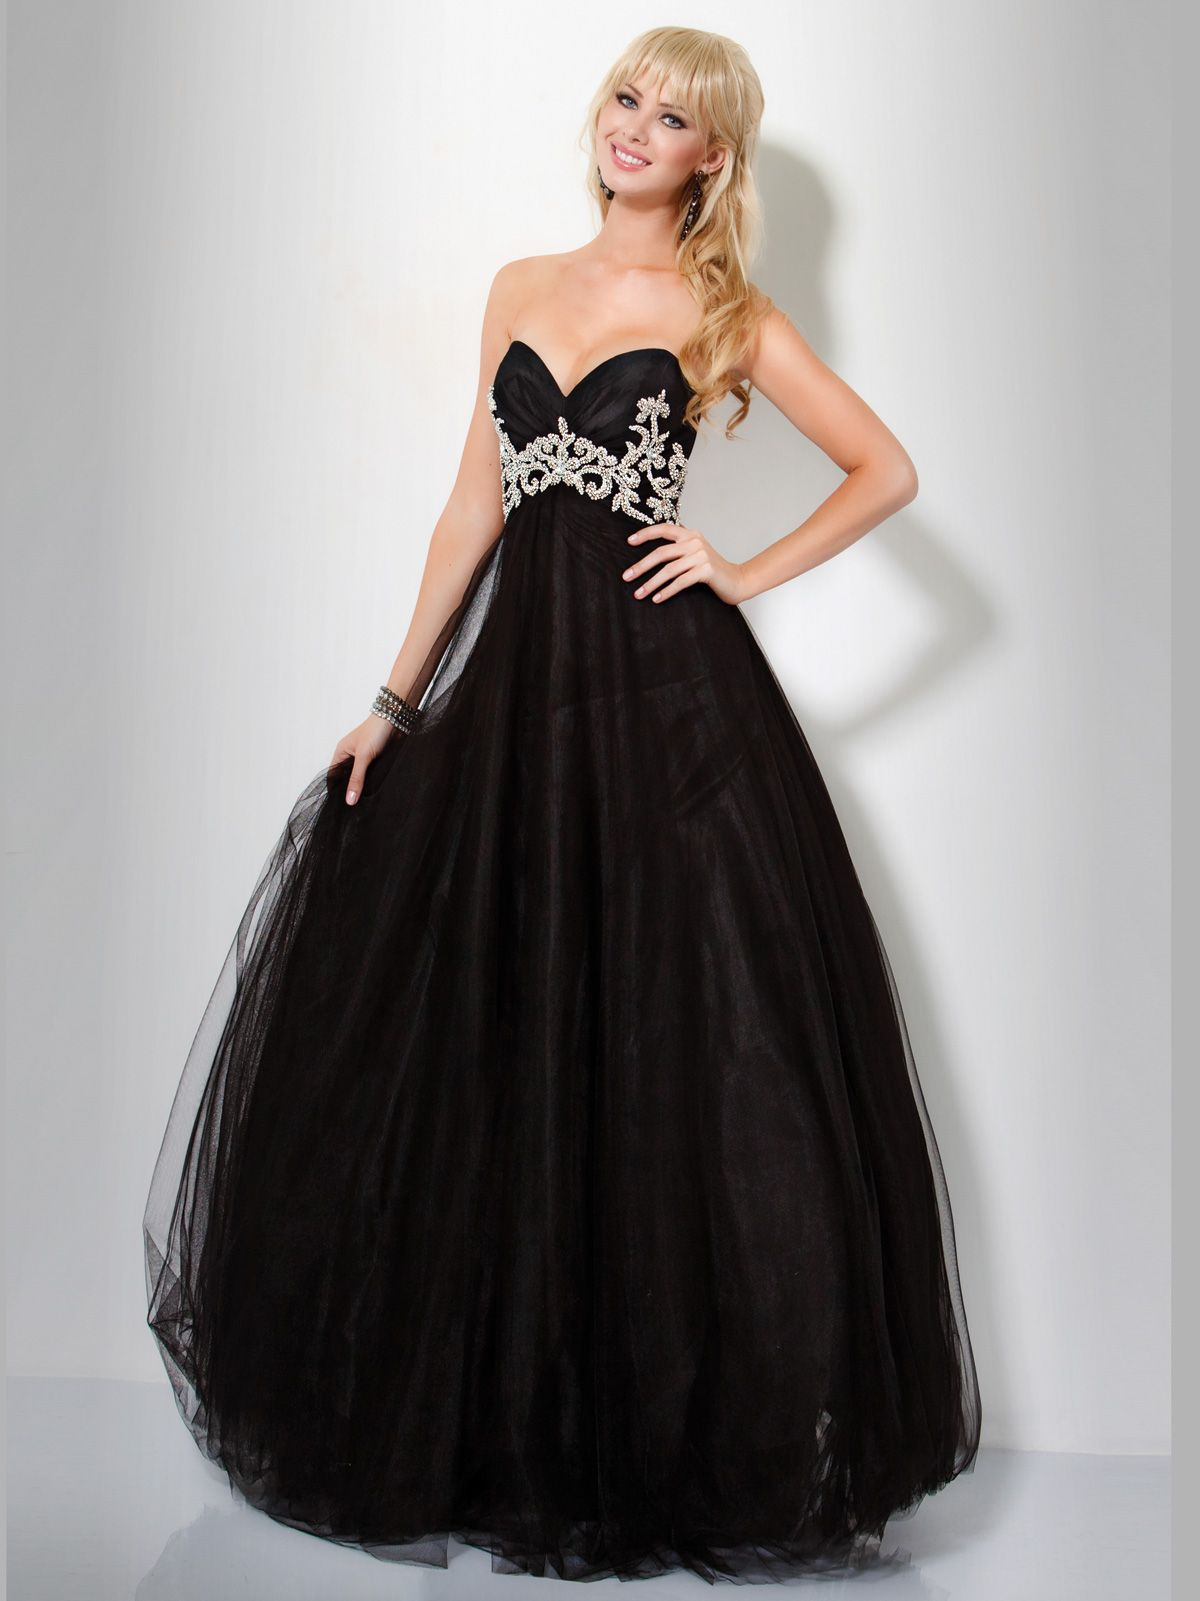 Genuine Couture Black Ball Gown Dresses Pinterest Ball